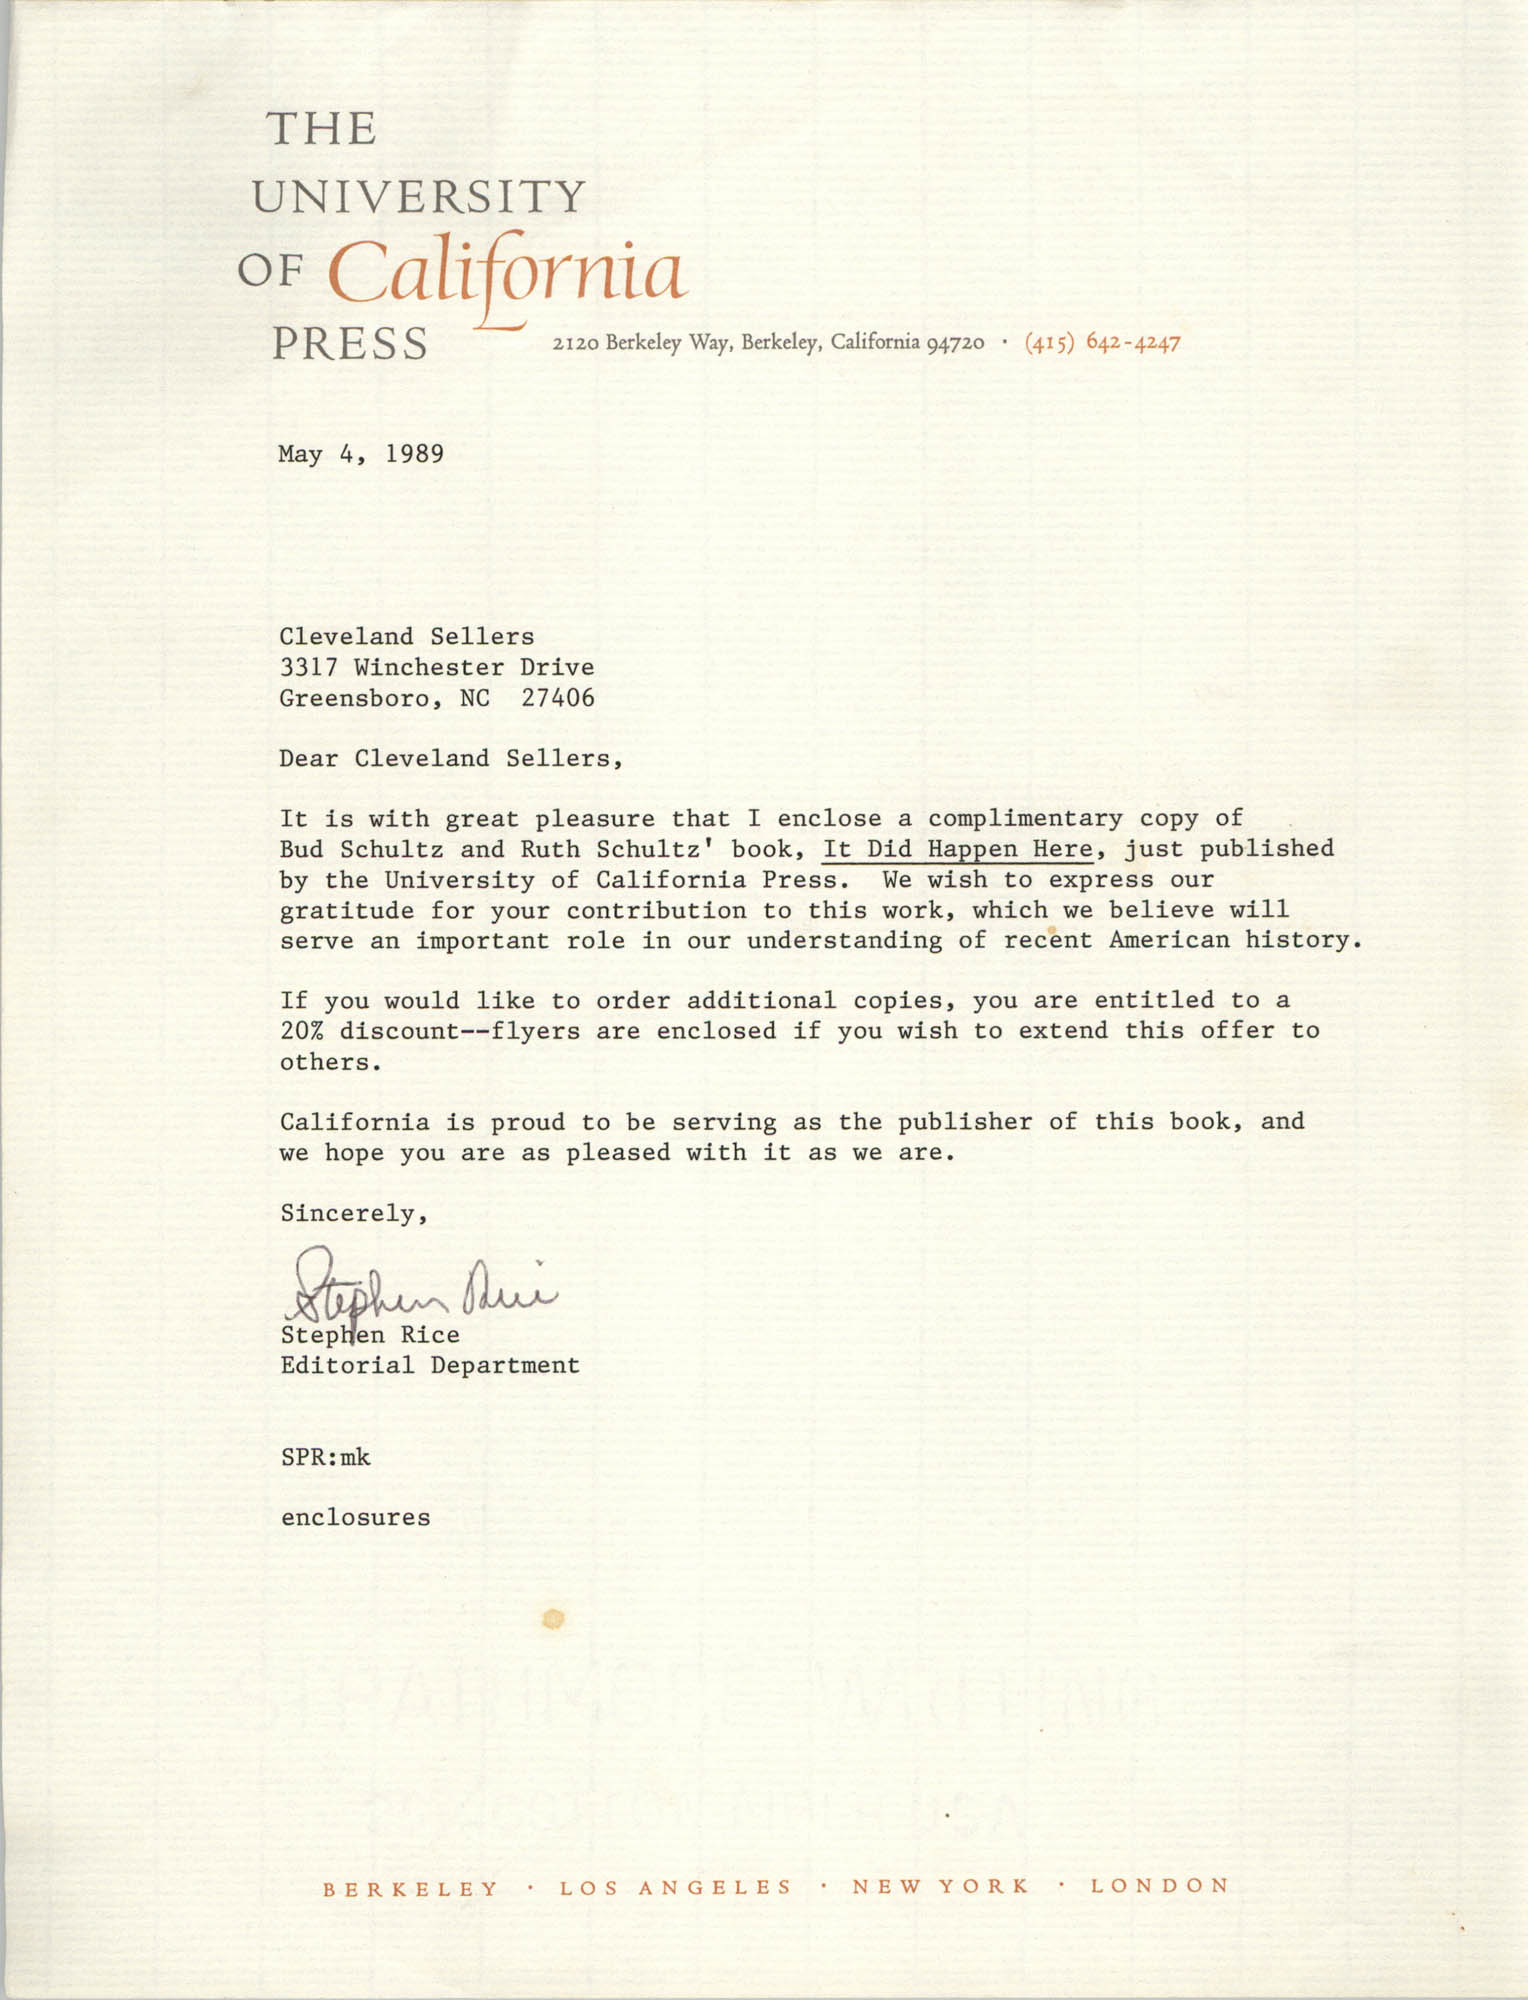 Letter from Stephen Rice to Cleveland Sellers, May 4, 1989